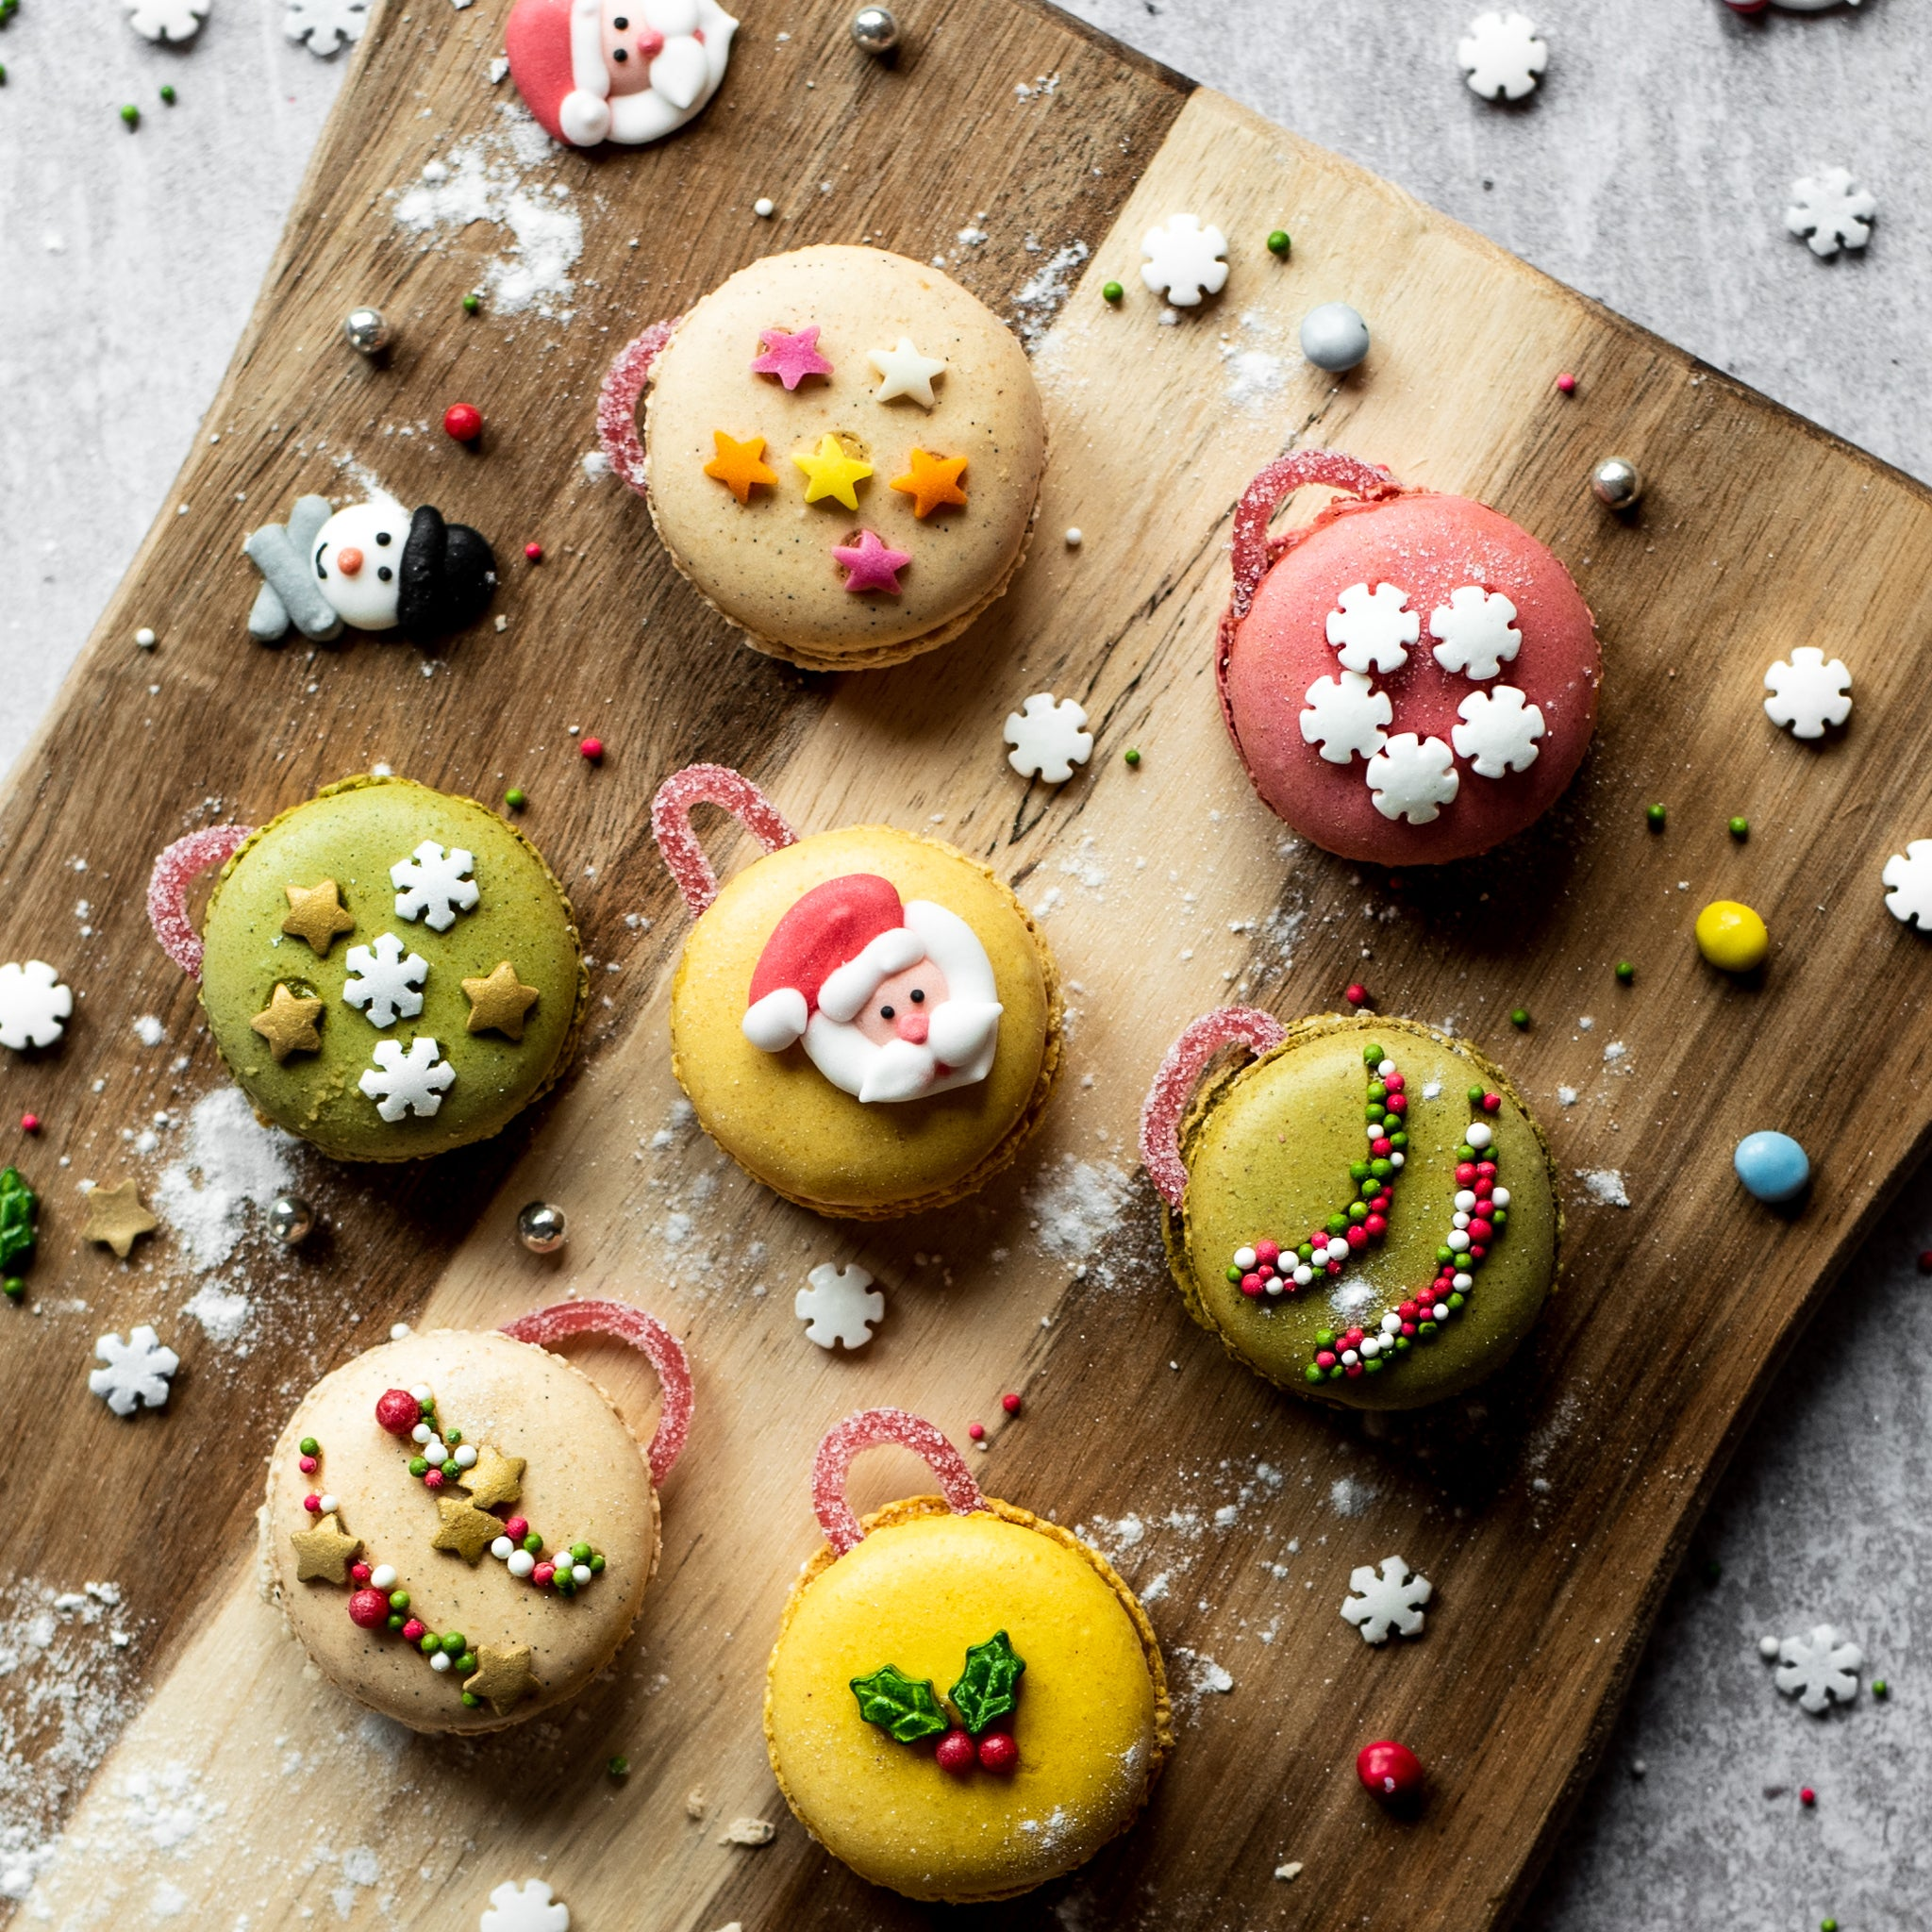 Macaron-Baubles-SQUARE-4.jpg